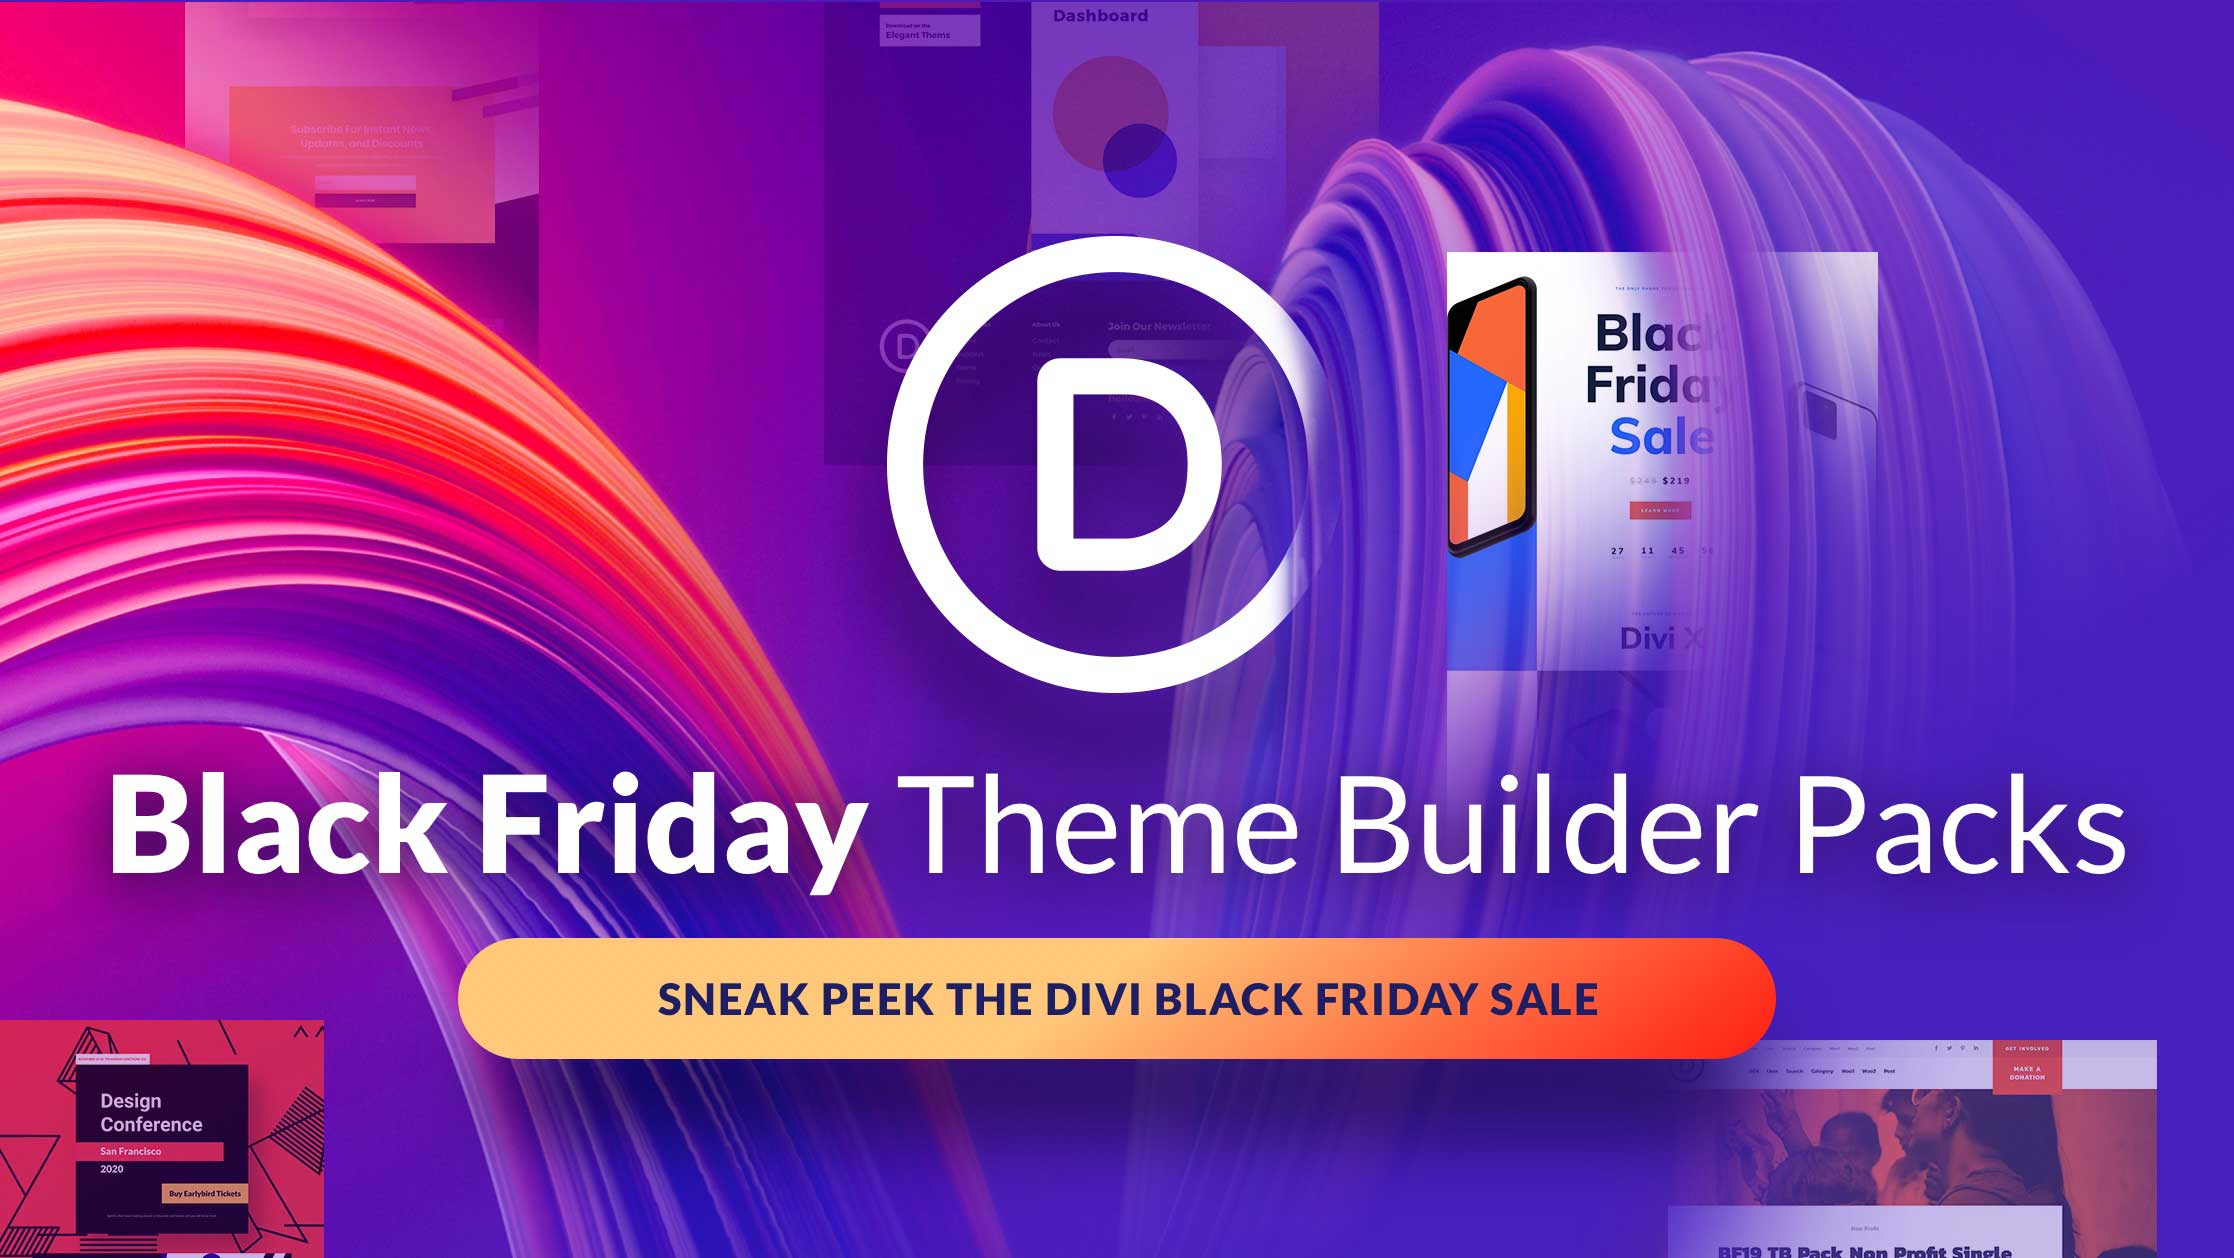 The Black Friday Theme Builder Packs: Divi 4.0 Users Will Love These!